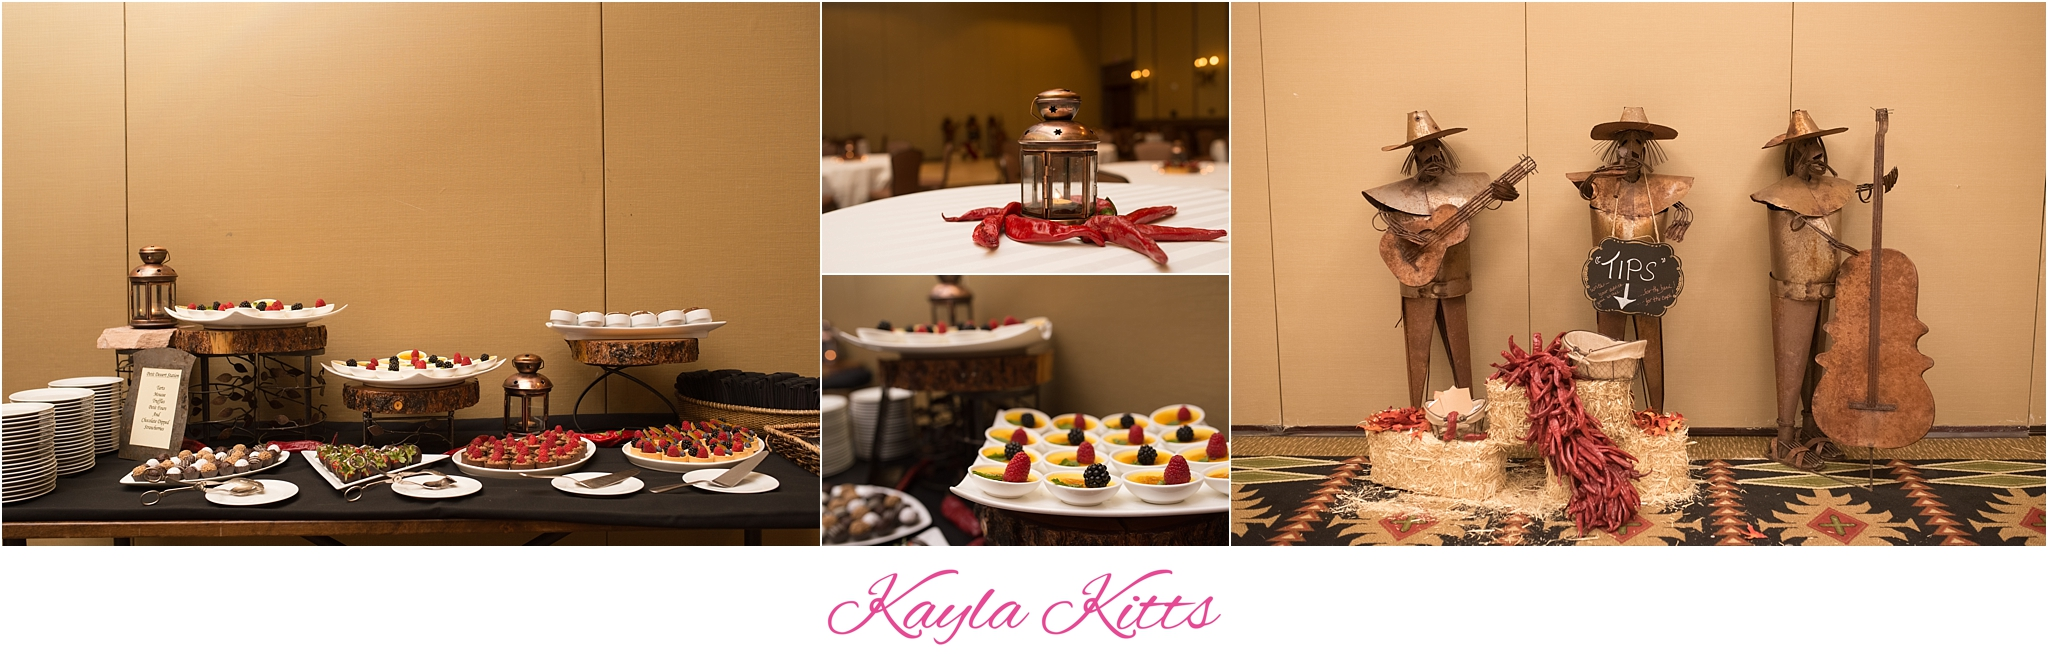 kayla kitts photography - albuquerque wedding photographer - albuquerque wedding photography - albuquerque venue - hyatt tamaya - hyatt tamaya wedding - new mexico wedding photographer_0054.jpg